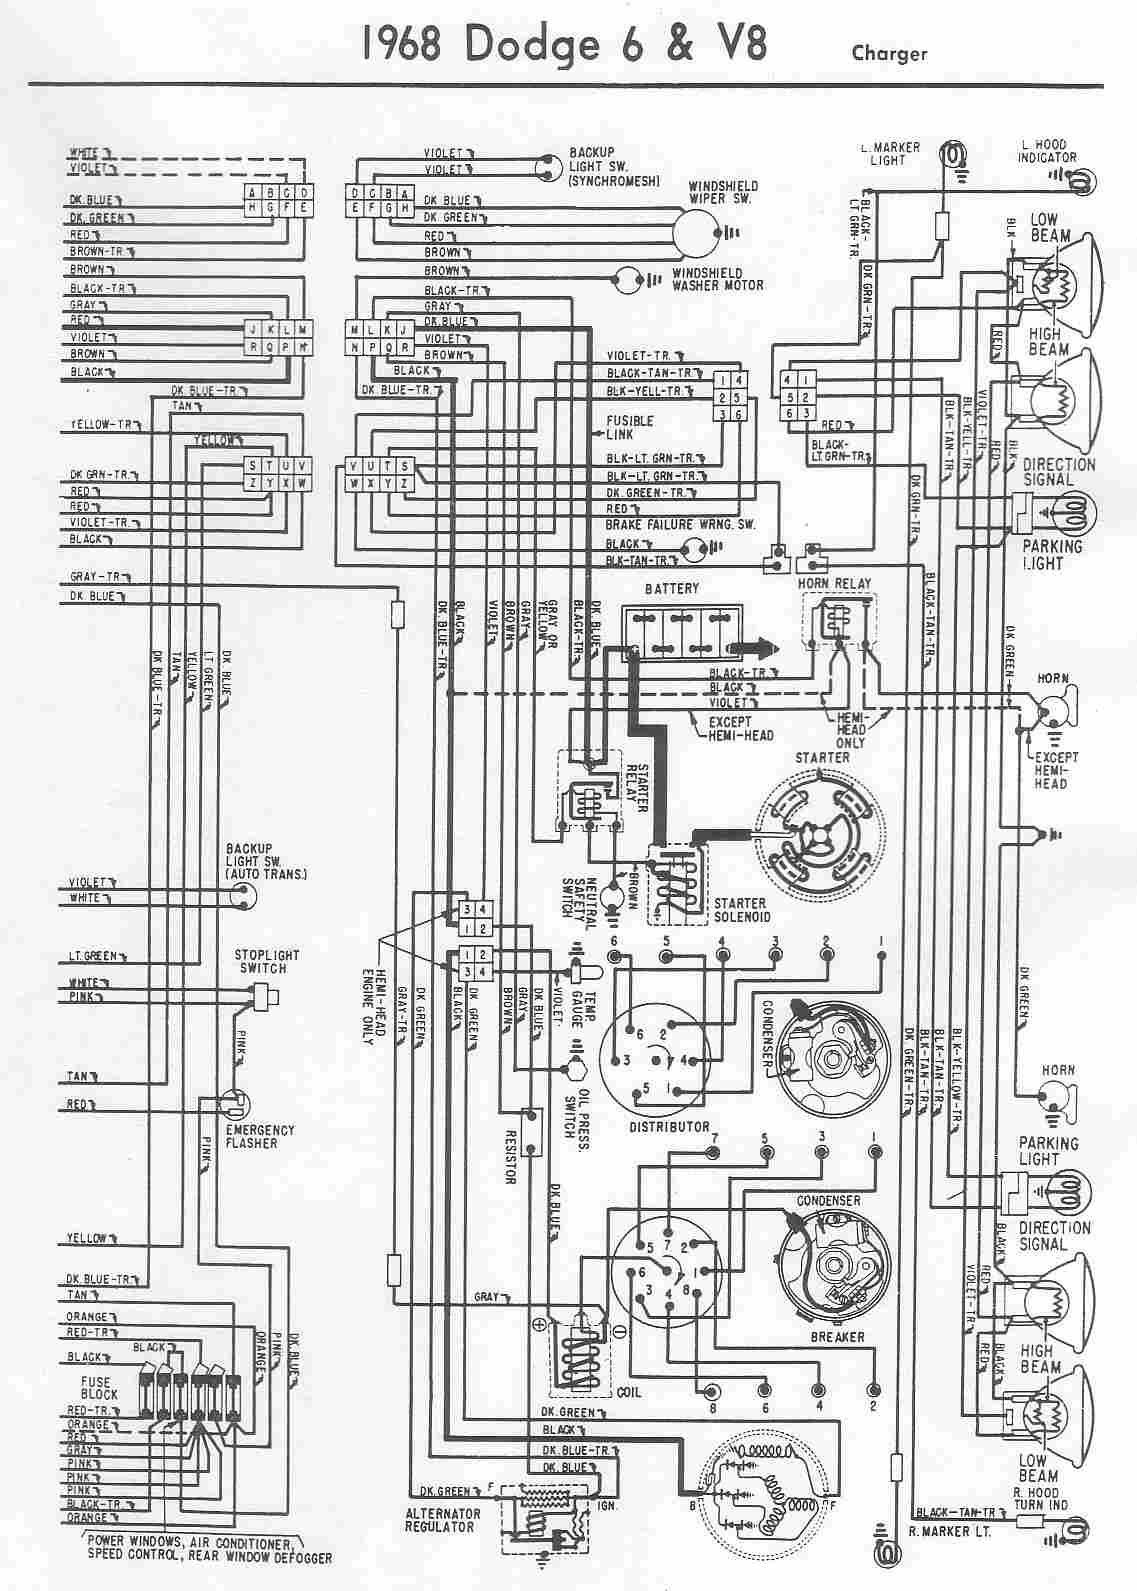 dodge magnum radio wiring diagram volvo 740 ignition car manuals diagrams pdf and fault codes